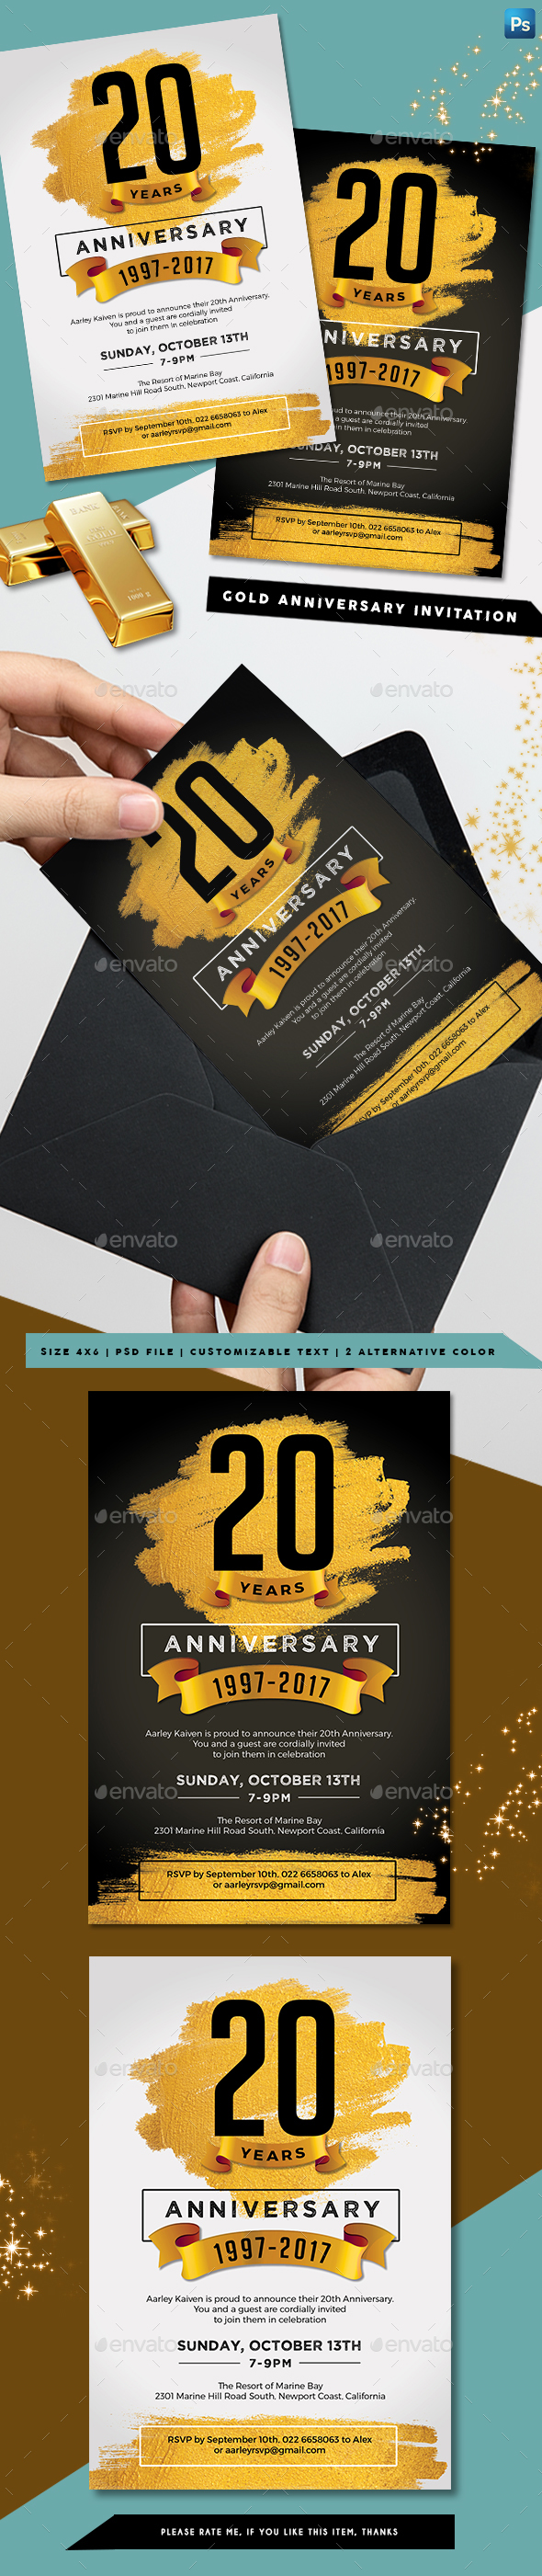 Gold Anniversary Invitation - Anniversary Greeting Cards